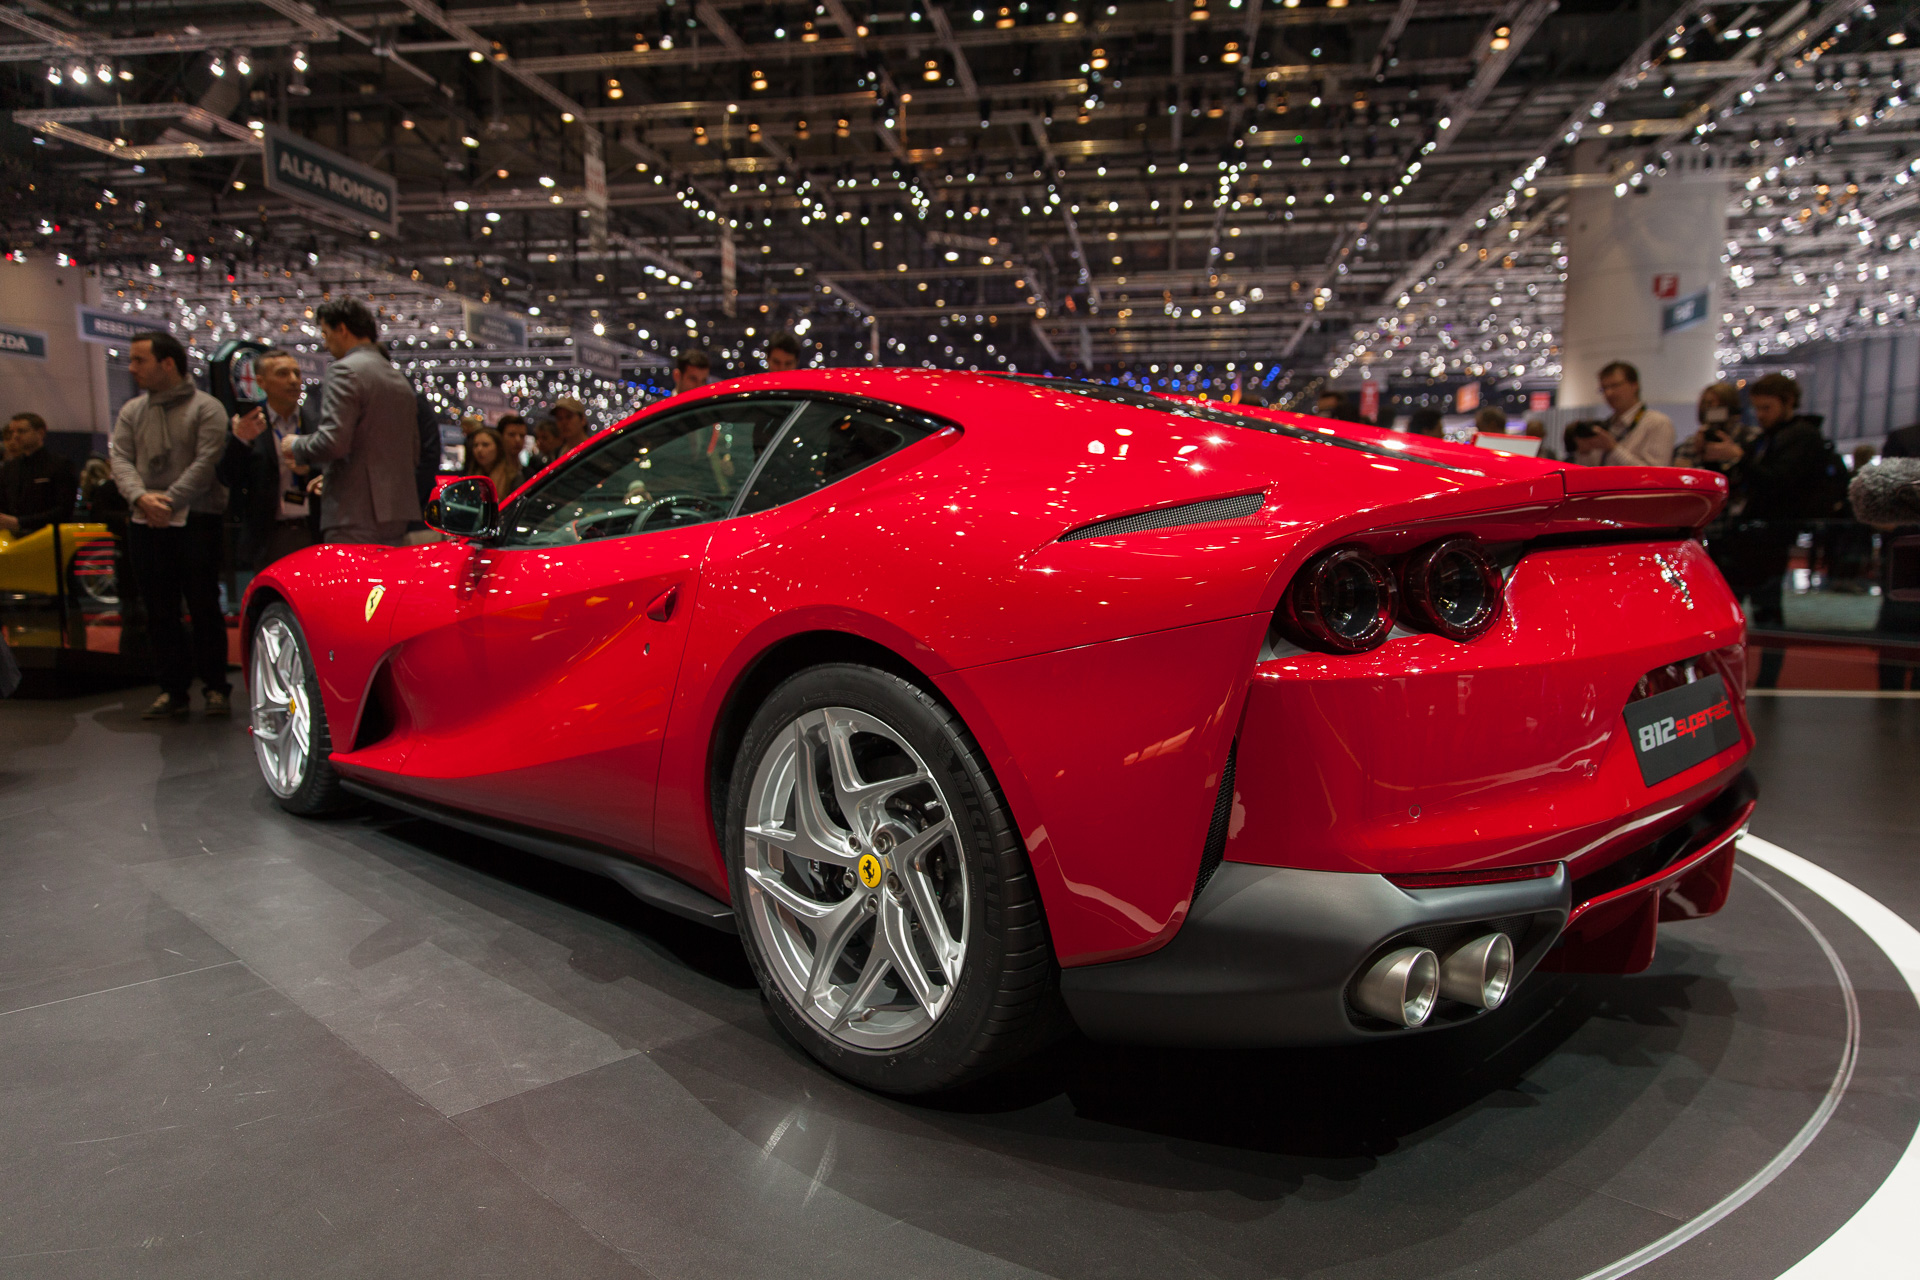 ferrari 812 superfast revealed with 789 horsepower. Black Bedroom Furniture Sets. Home Design Ideas